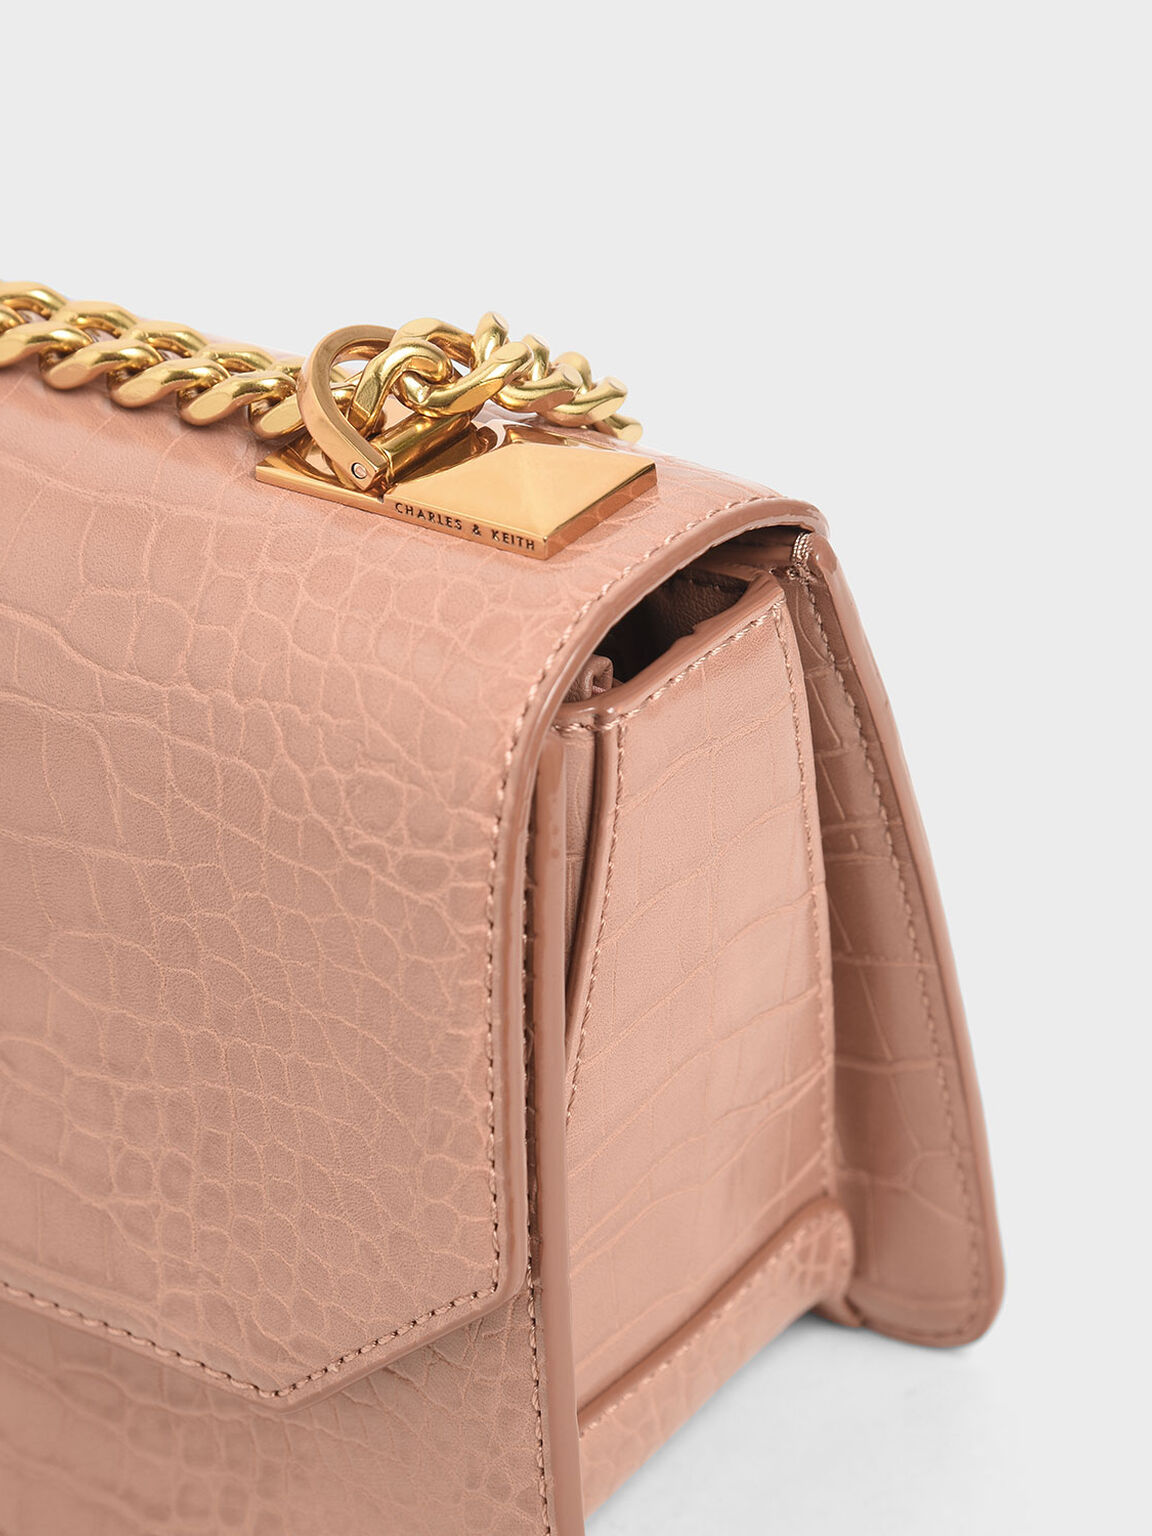 Croc-Effect Chain Strap Crossbody Bag, Blush, hi-res